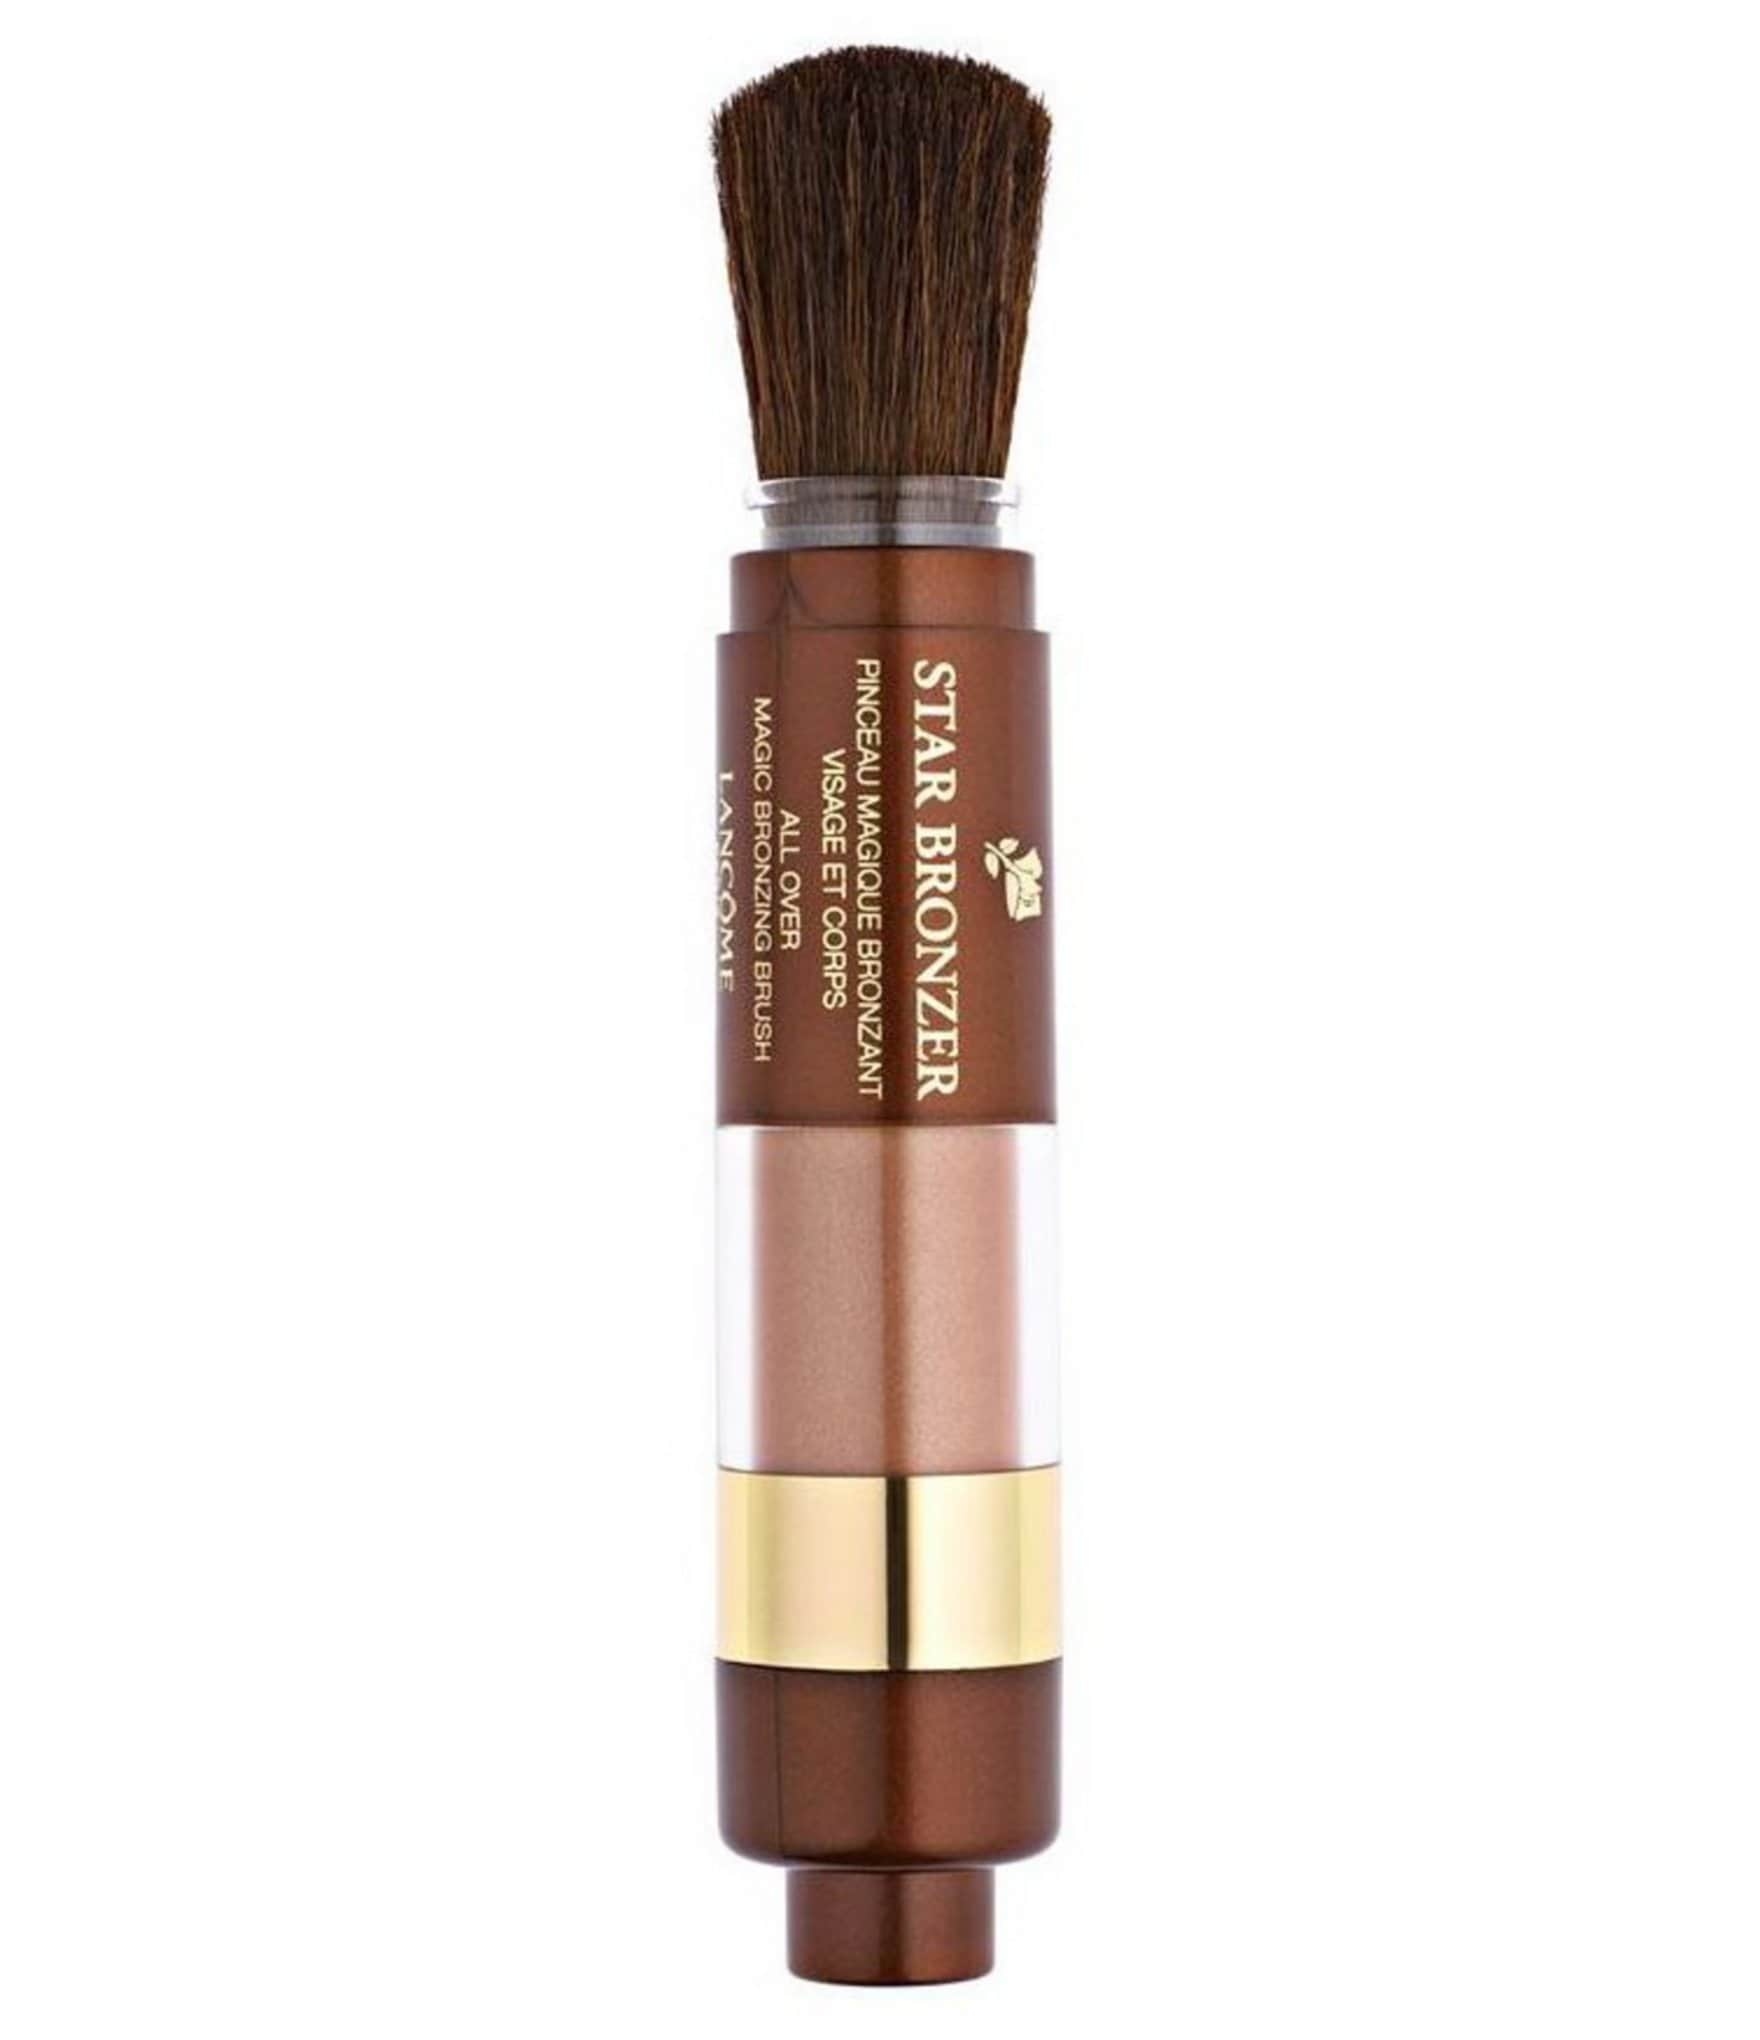 9 Best Bronzer for Every Skin Tone - Best Bronzer Shades ...